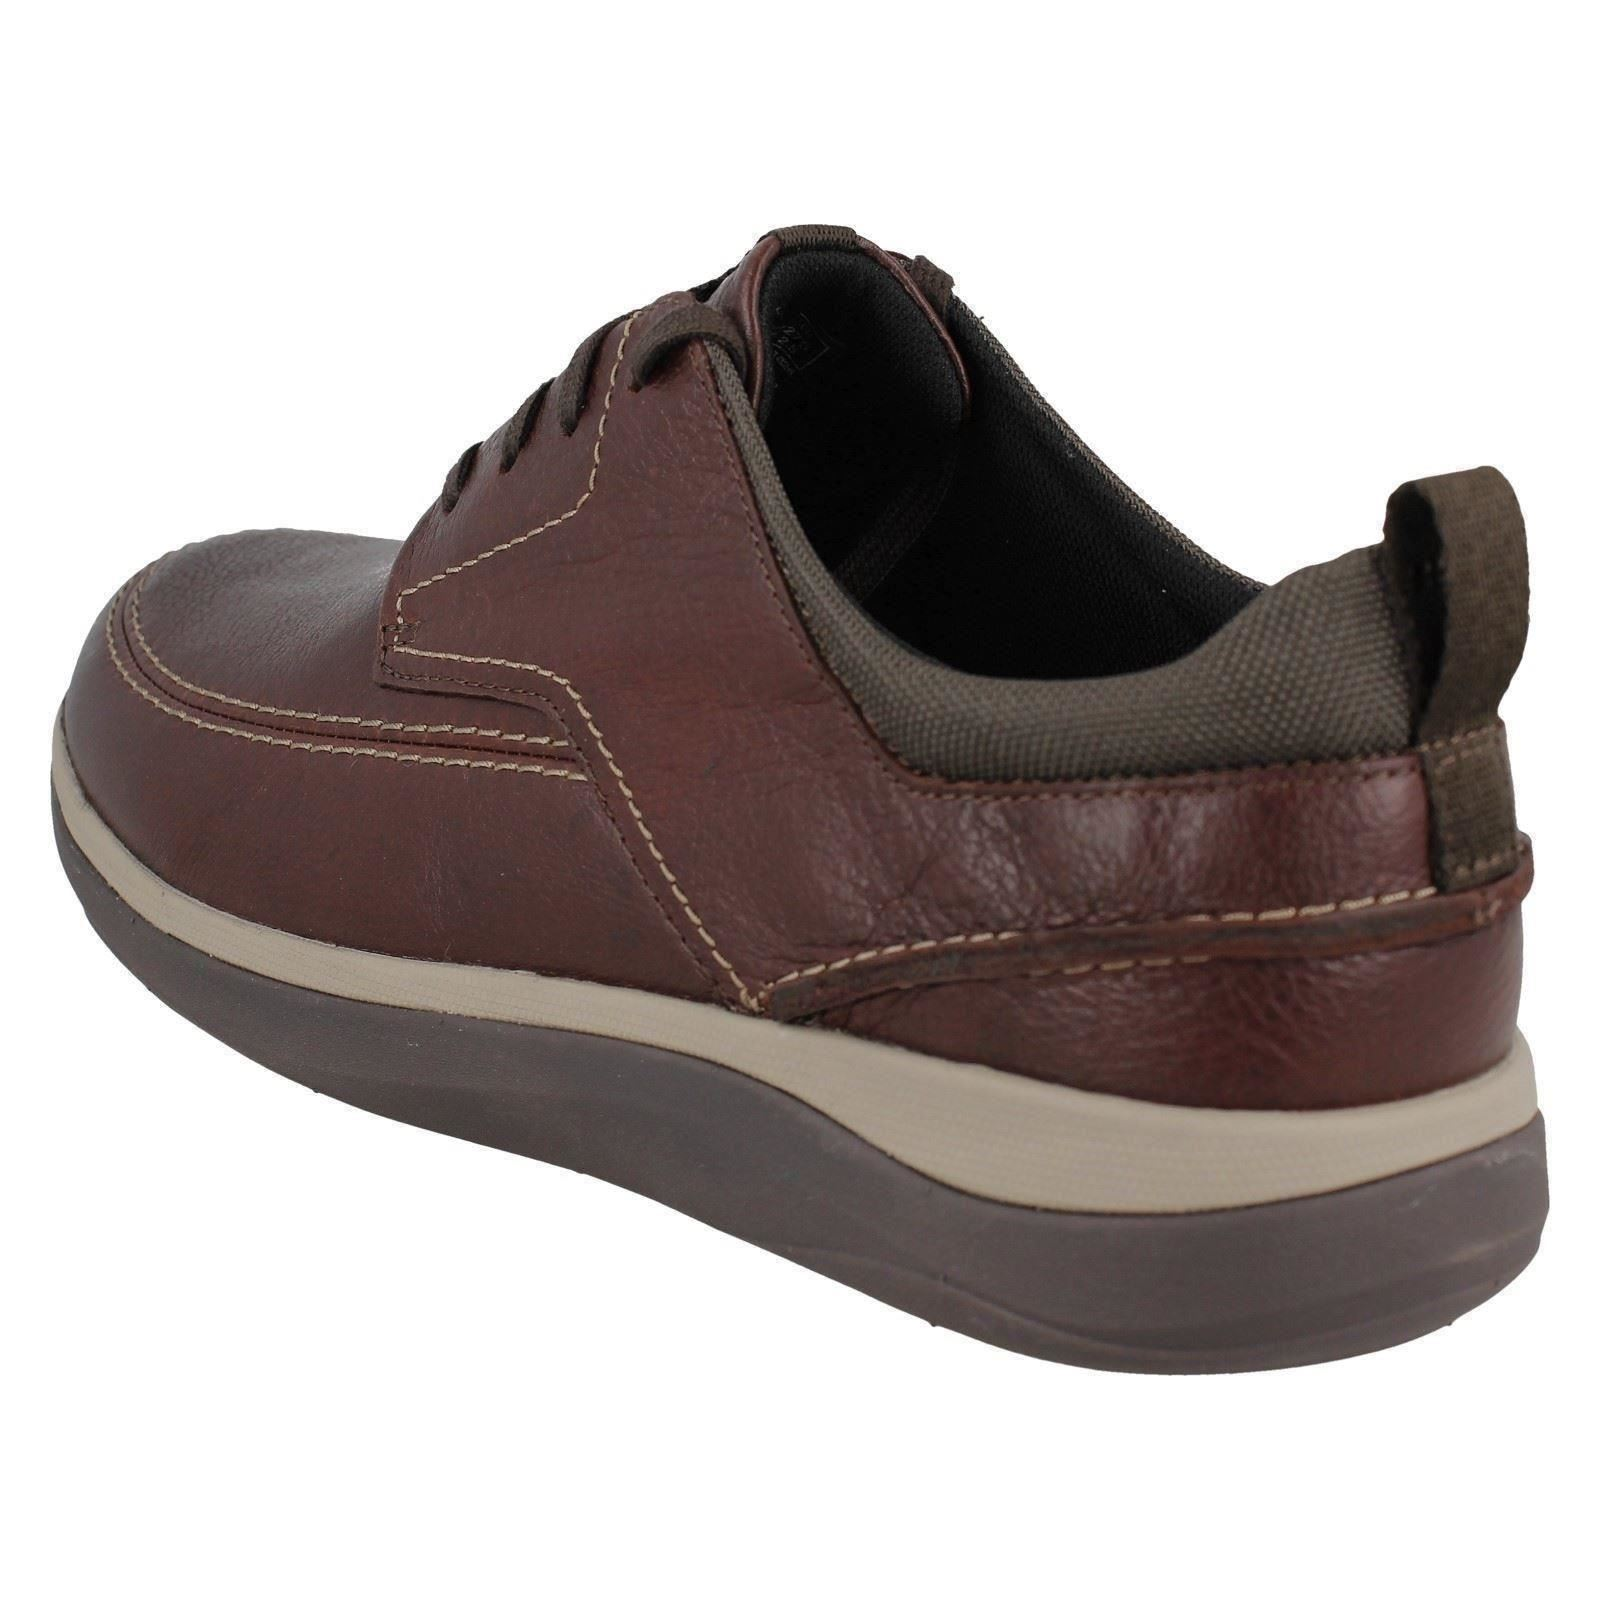 Mens-Unstructured-by-Clarks-Lace-Up-Shoes-039-Garratt-Street-039 thumbnail 12